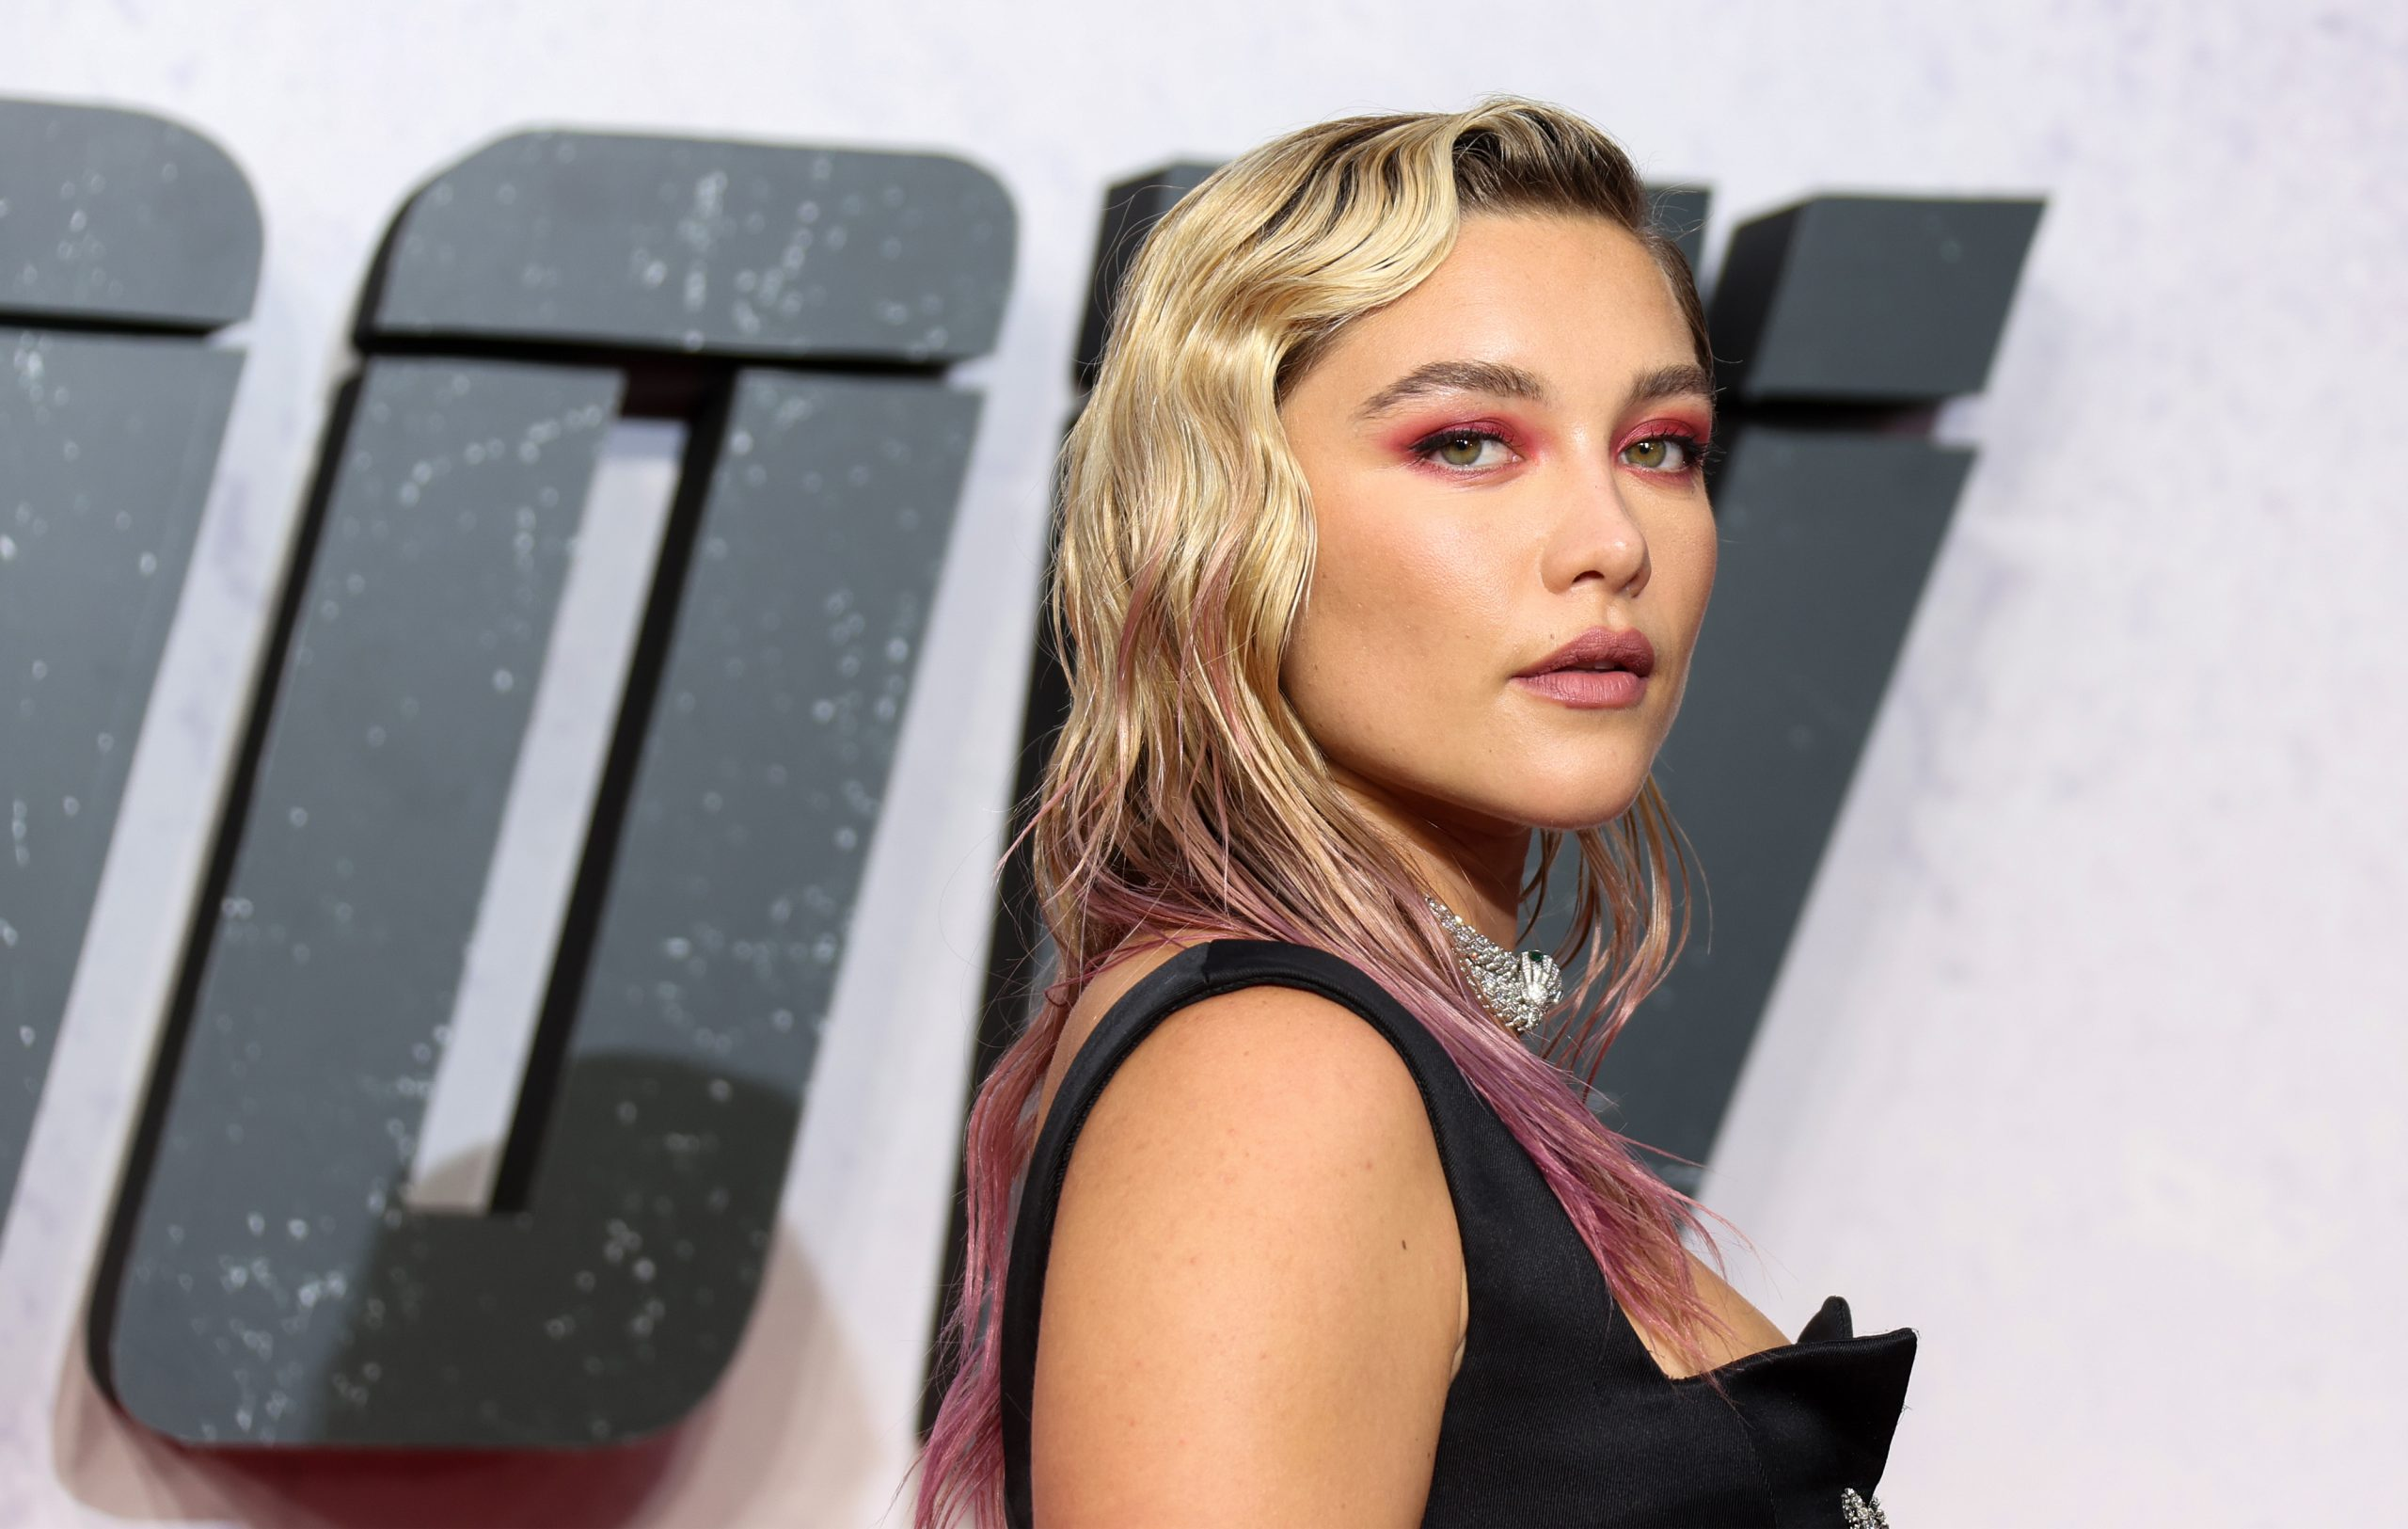 'Black Widow': Florence Pugh Feared Fans Wouldn't Like This 'Completely Different Chapter' of Her Career